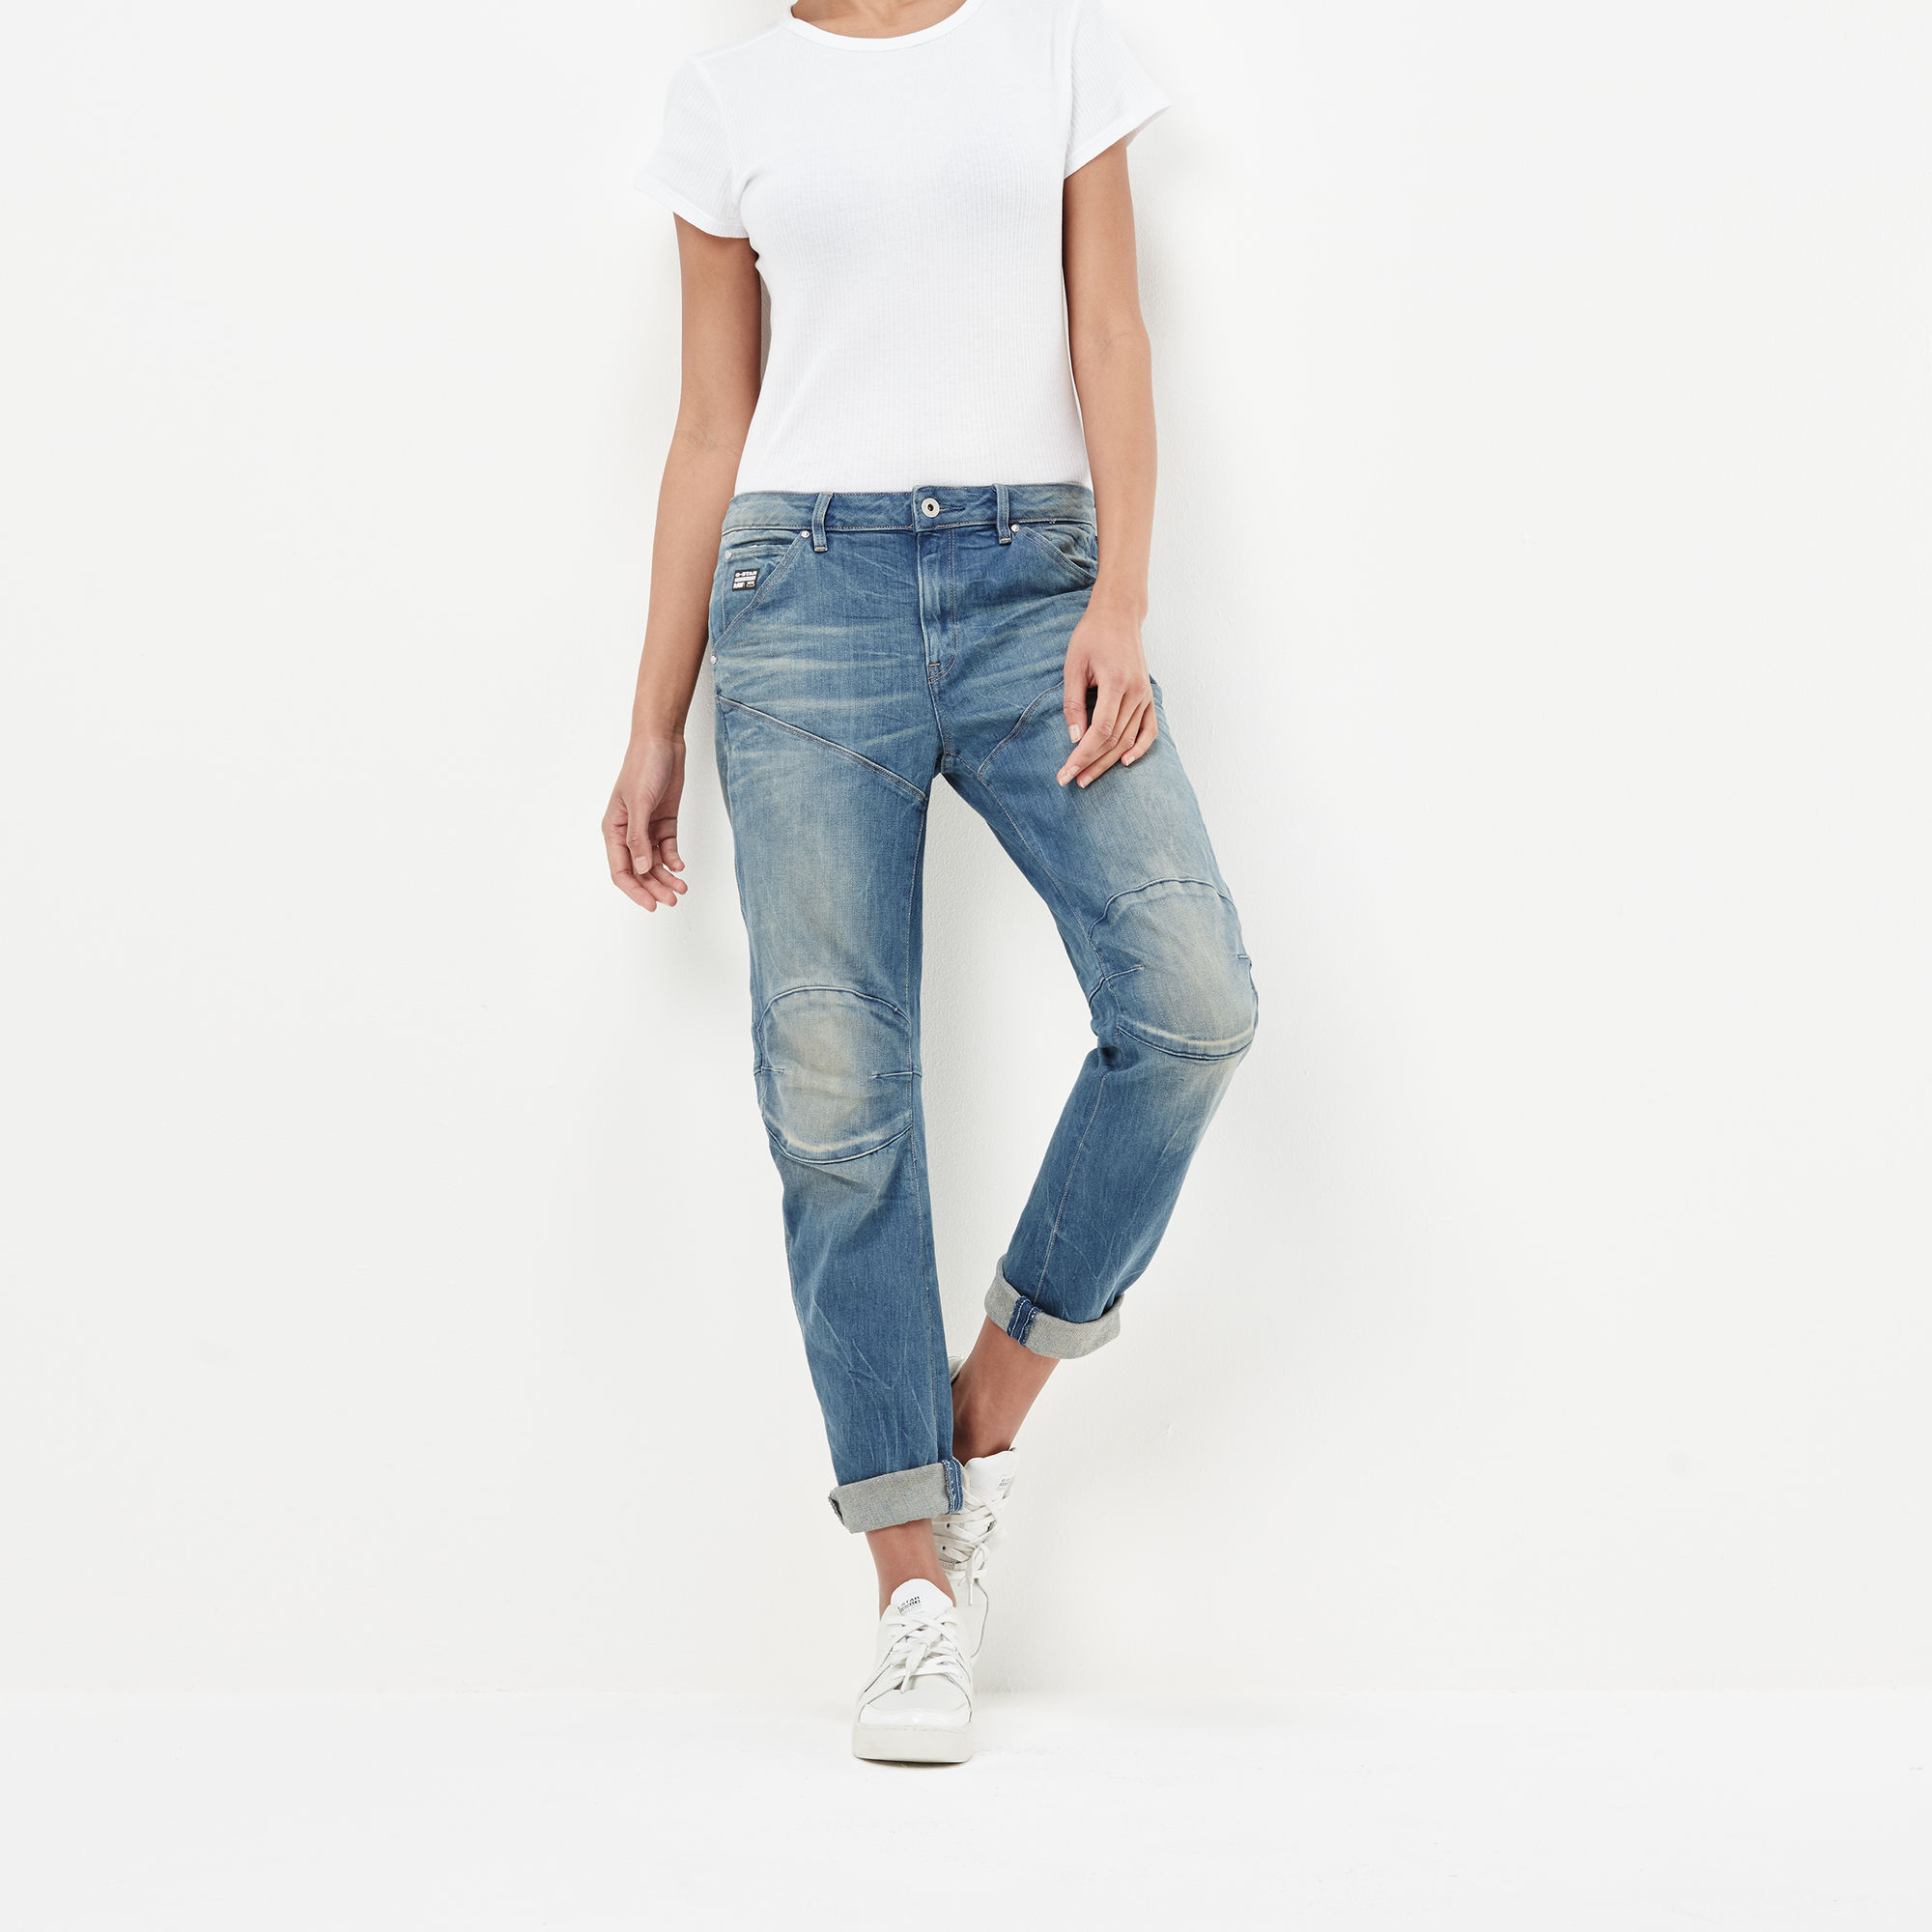 Image of G Star Raw 5620 G-Star Elwood 3D Low Waist Boyfriend Jeans